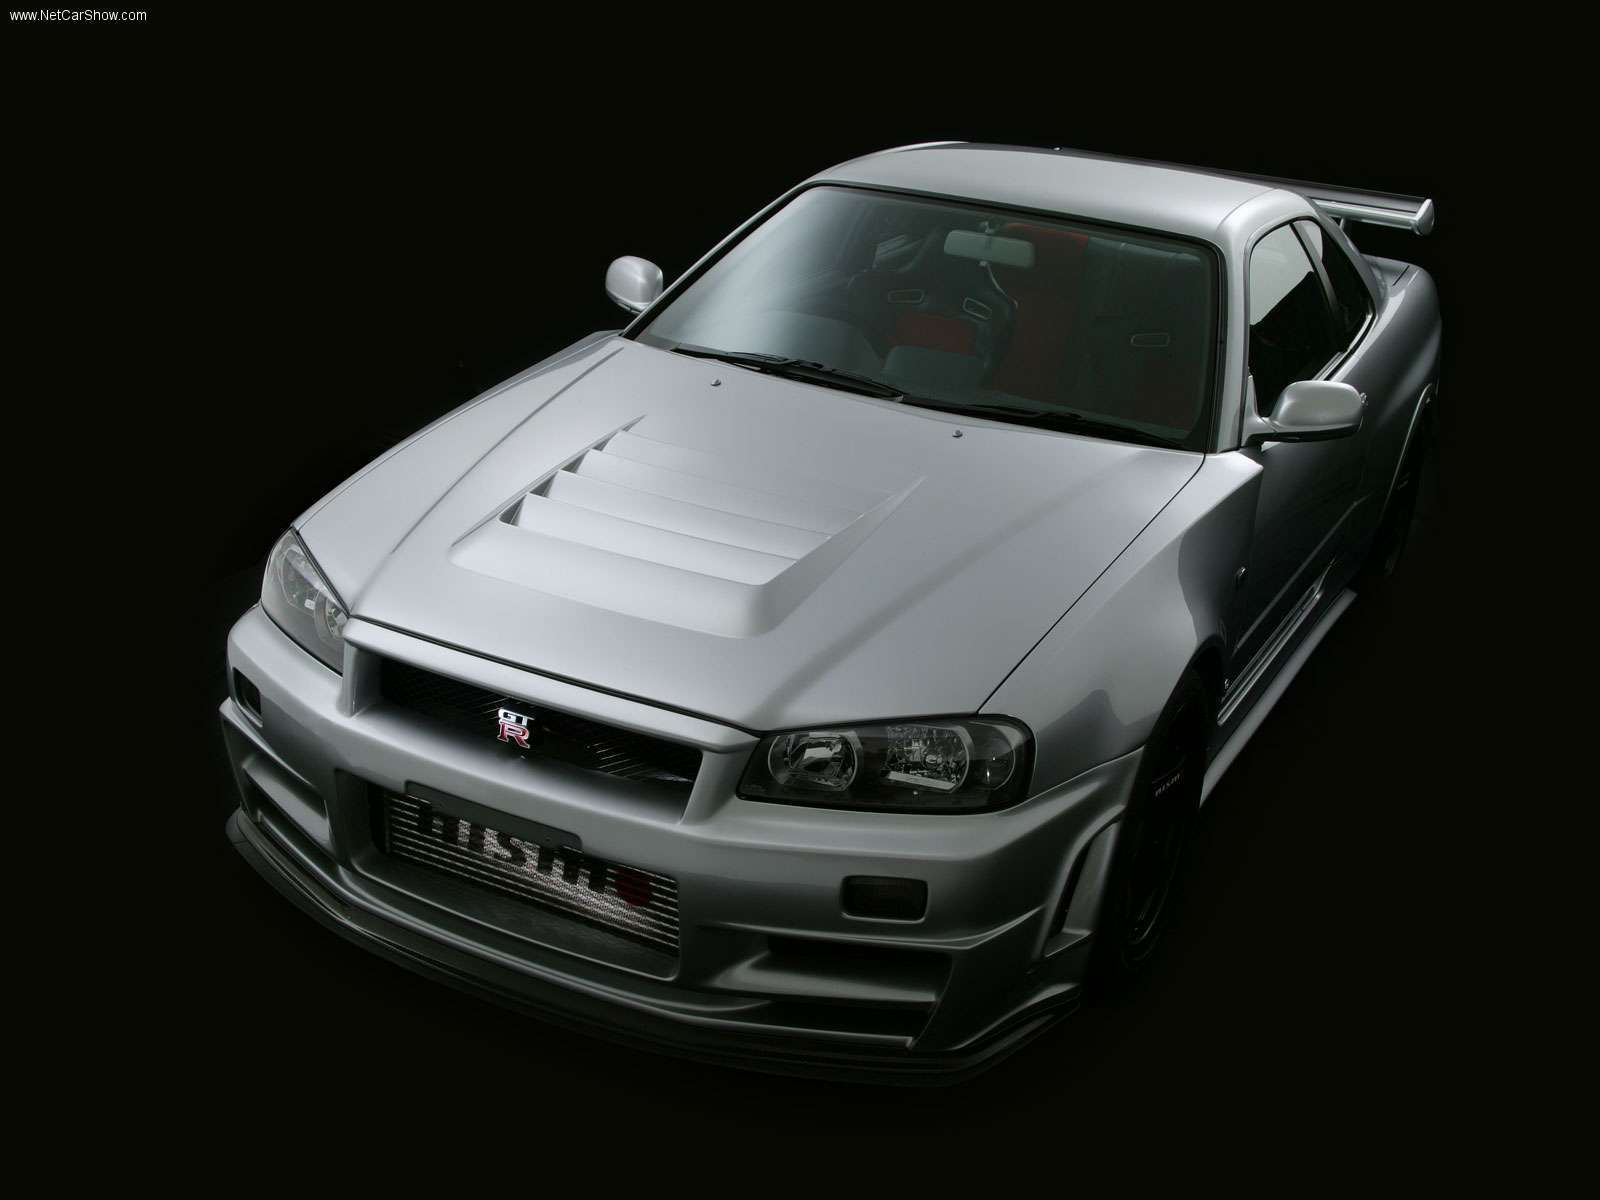 Nismo nissan skyline r34 gtr z tune high res desktop wallpaper nismo nissan skyline r34 gtr z tune voltagebd Images